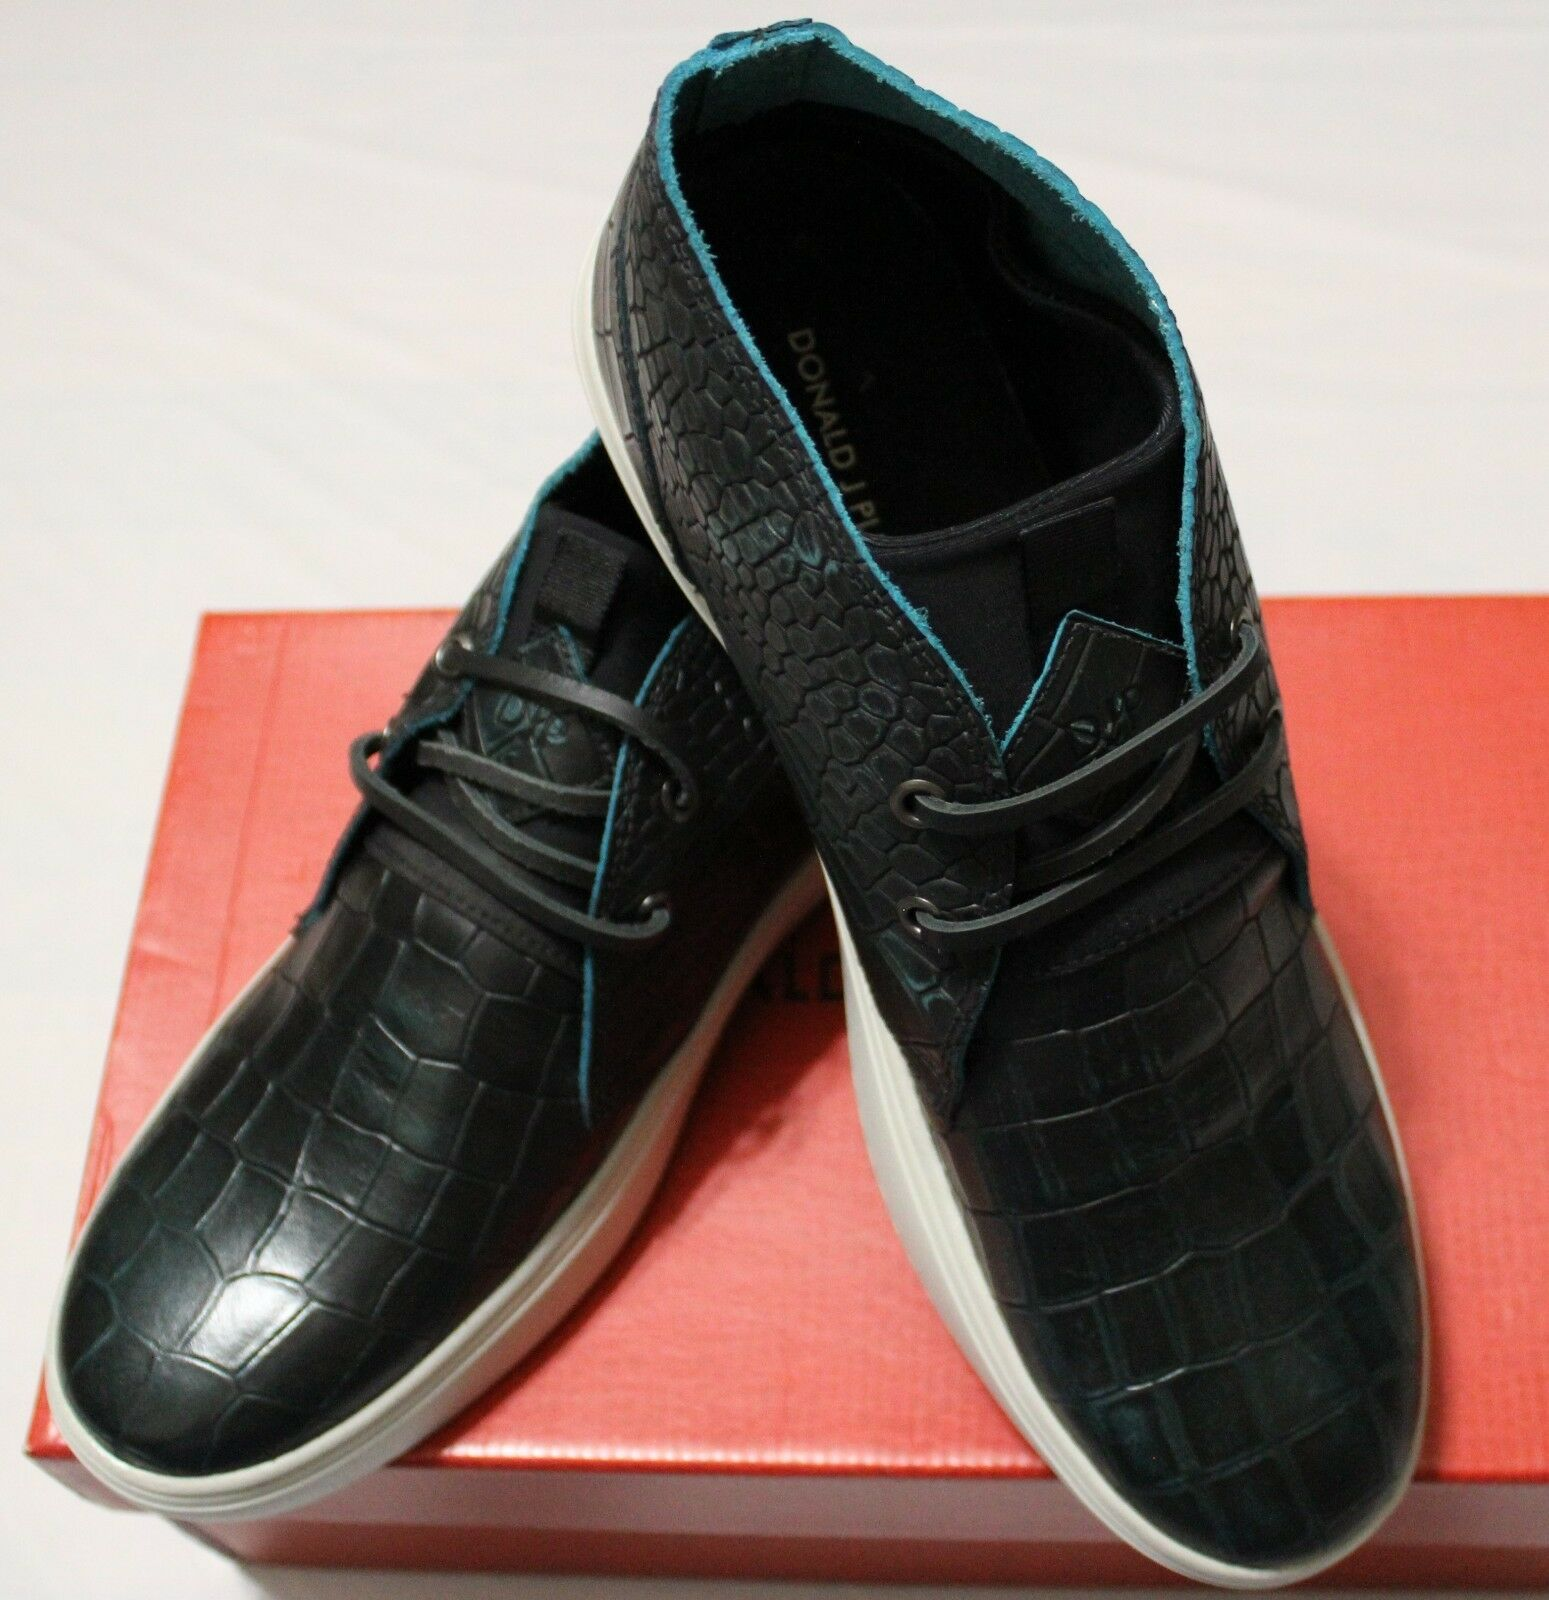 245 DONALD J PLINER PAXTON TEAL WASHED CROCCO SNEAKER US 8M